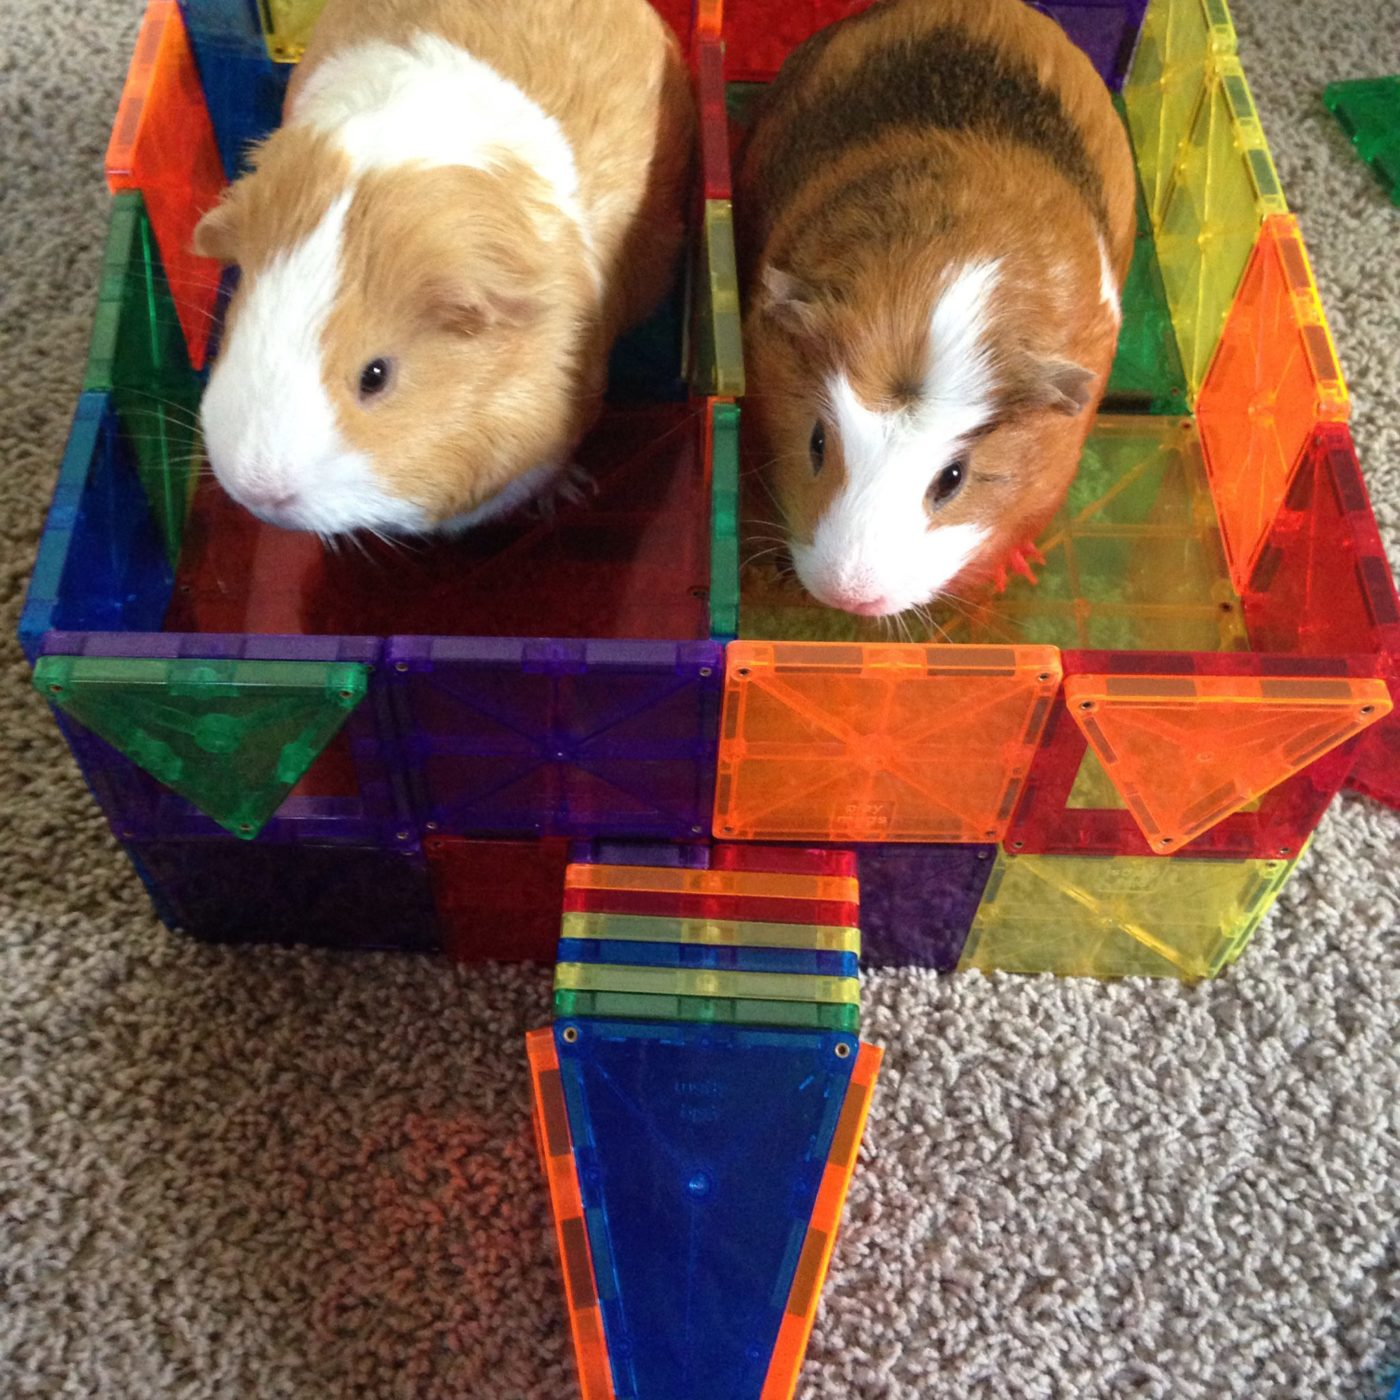 10 tricks get guinea pigs interacting family.More fun with magnet tiles! A guinea pig corral! Family fun, kids activties, teaching kids compassion, empahty, kindness. #guineapigs #pets #petcare #animals #familypet #compassion #pethealth #smallanimalpets #kids #childrenandpets